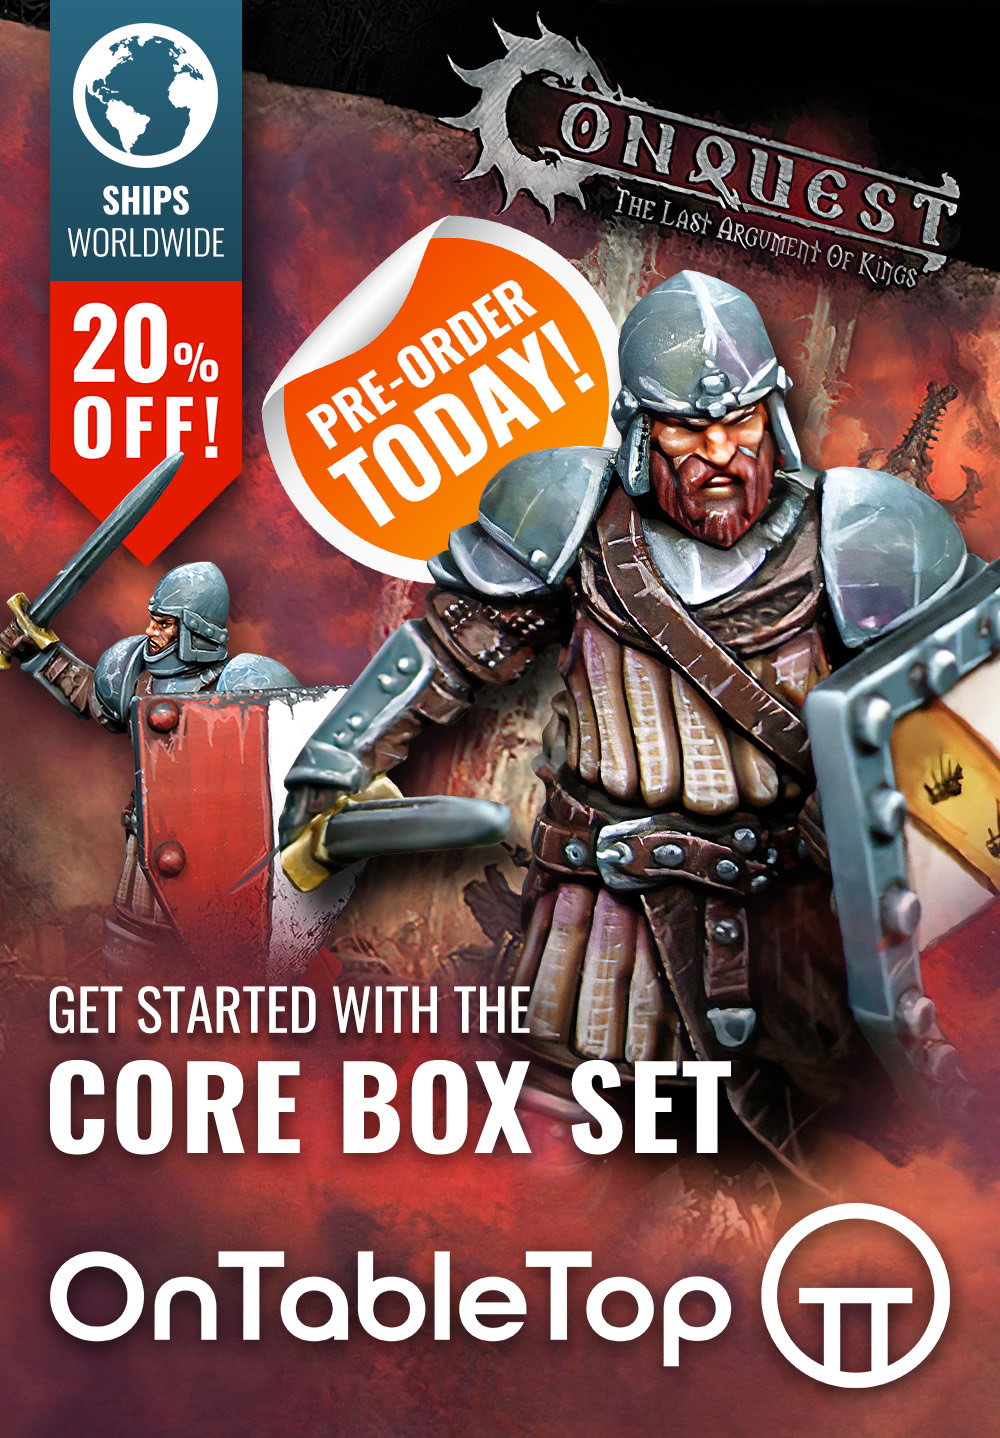 Conquest Core Box Set - Pre-Order